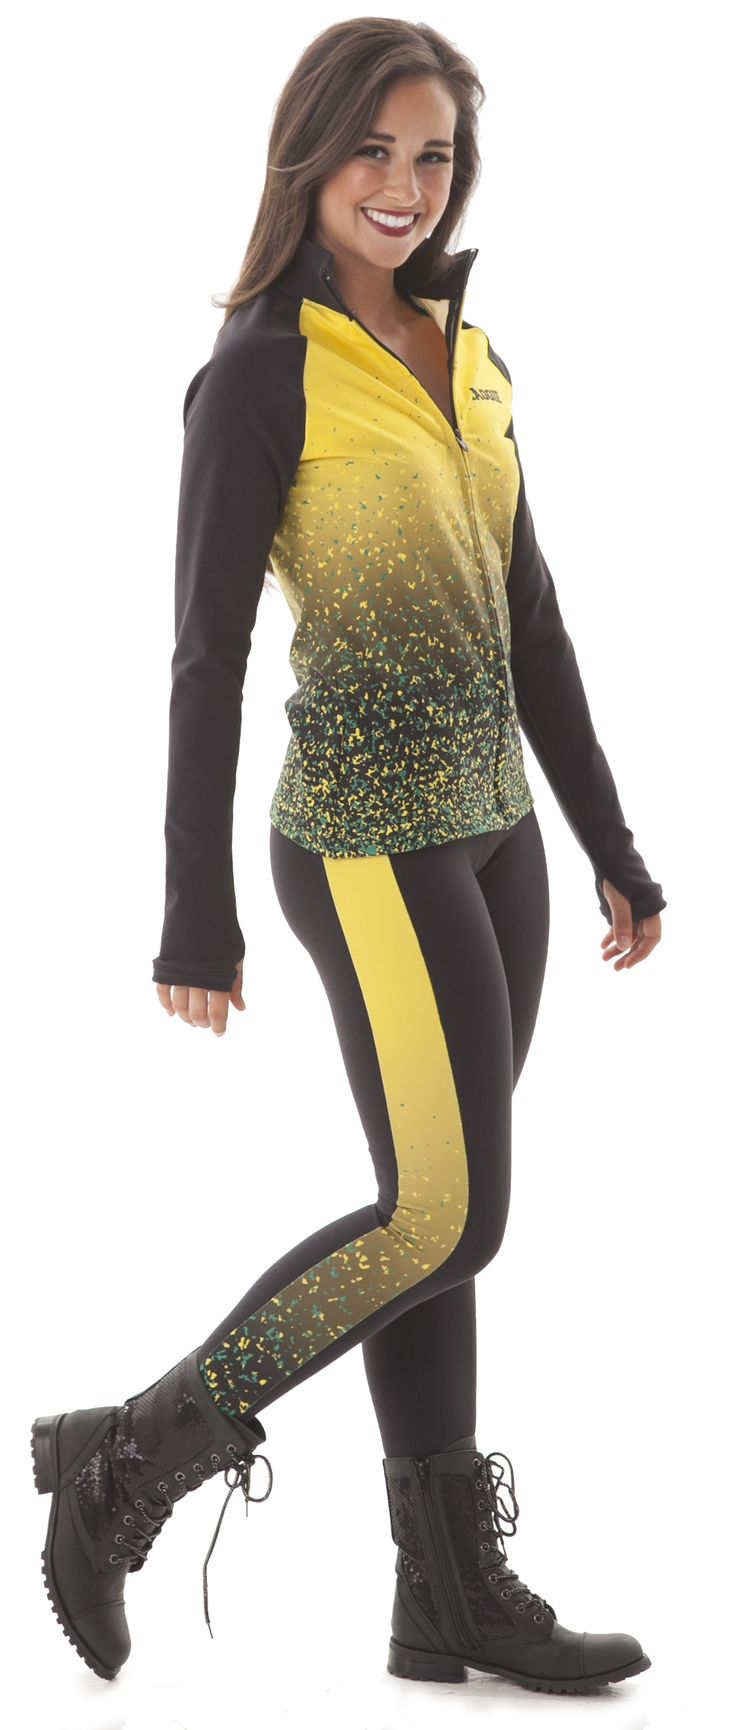 Custom Warm Ups! Ashwaubenon 2015-2016 dance team Warm Ups, leggings and ombre jacket